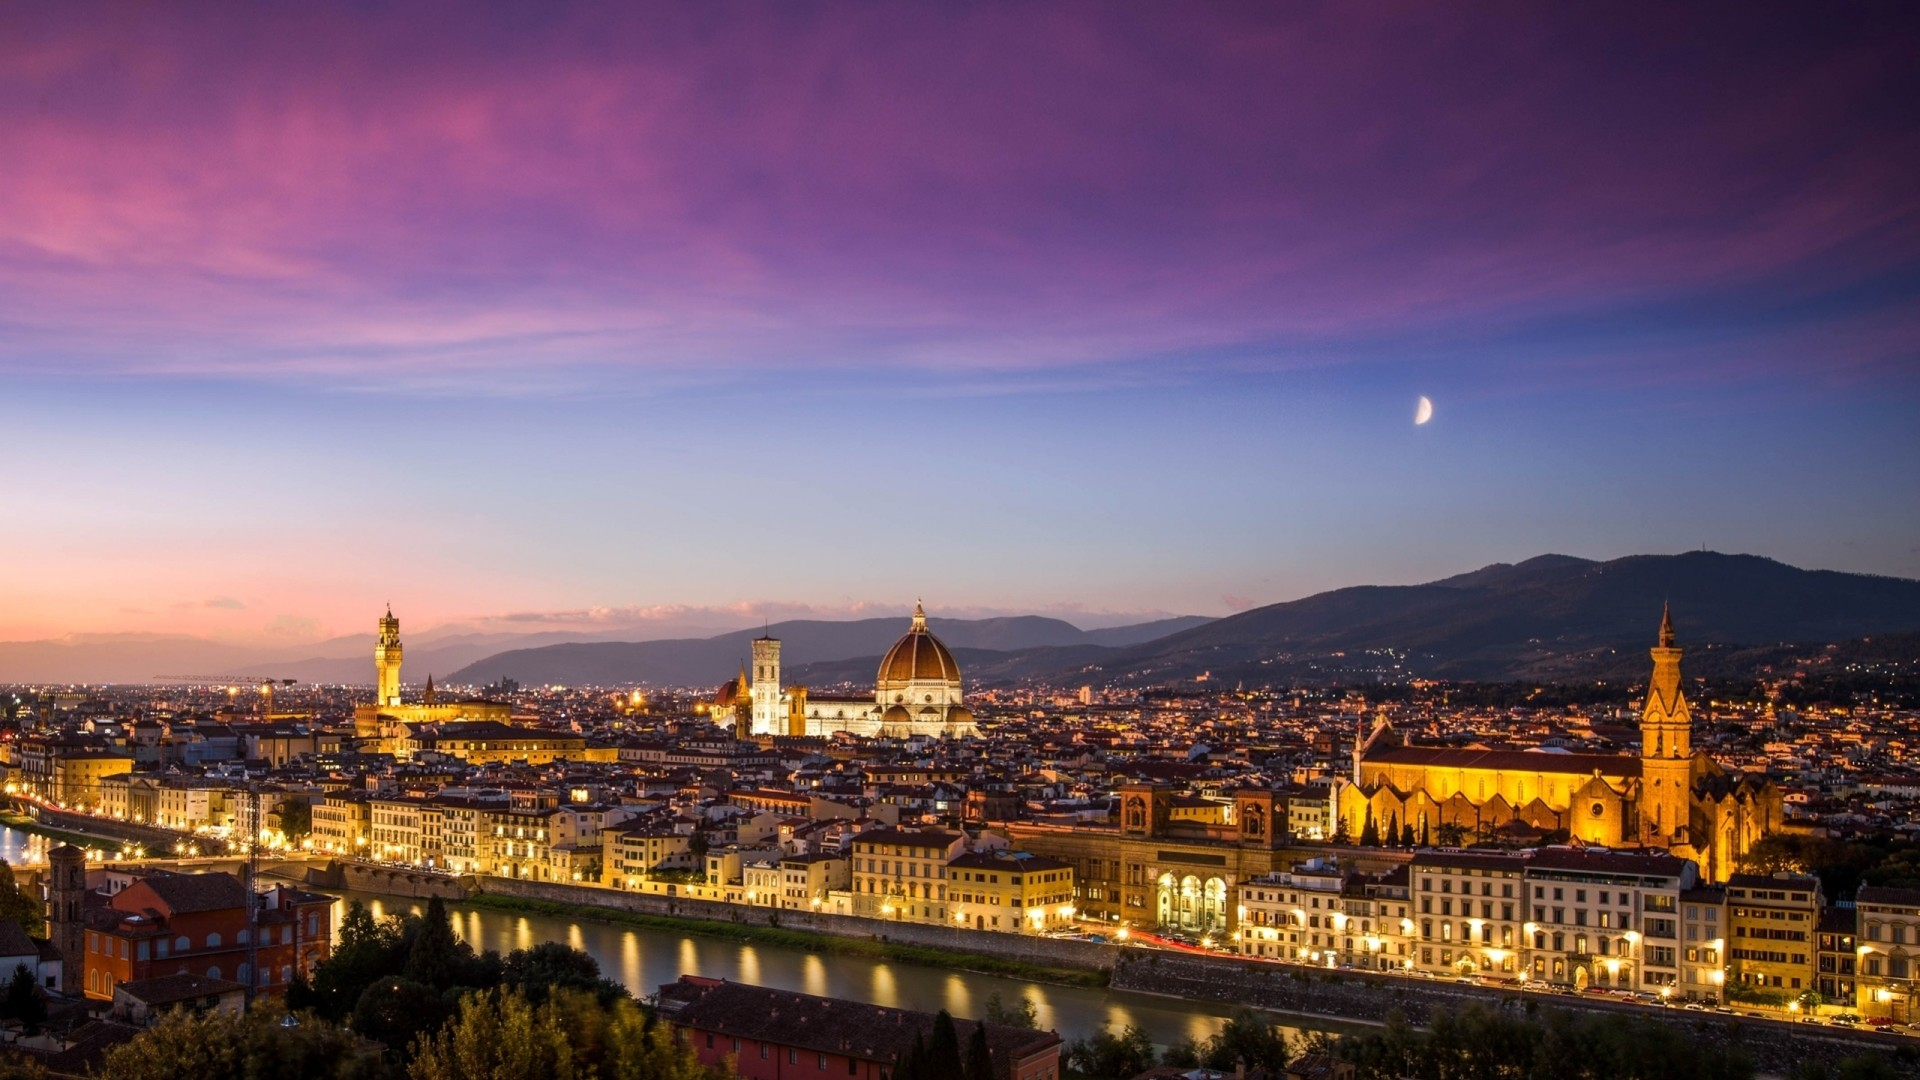 1920x1080 florence italy hd wallpaper Florence Italy Evening Lights 4K Uhd Background  Wallpaper - HD Wallpapers